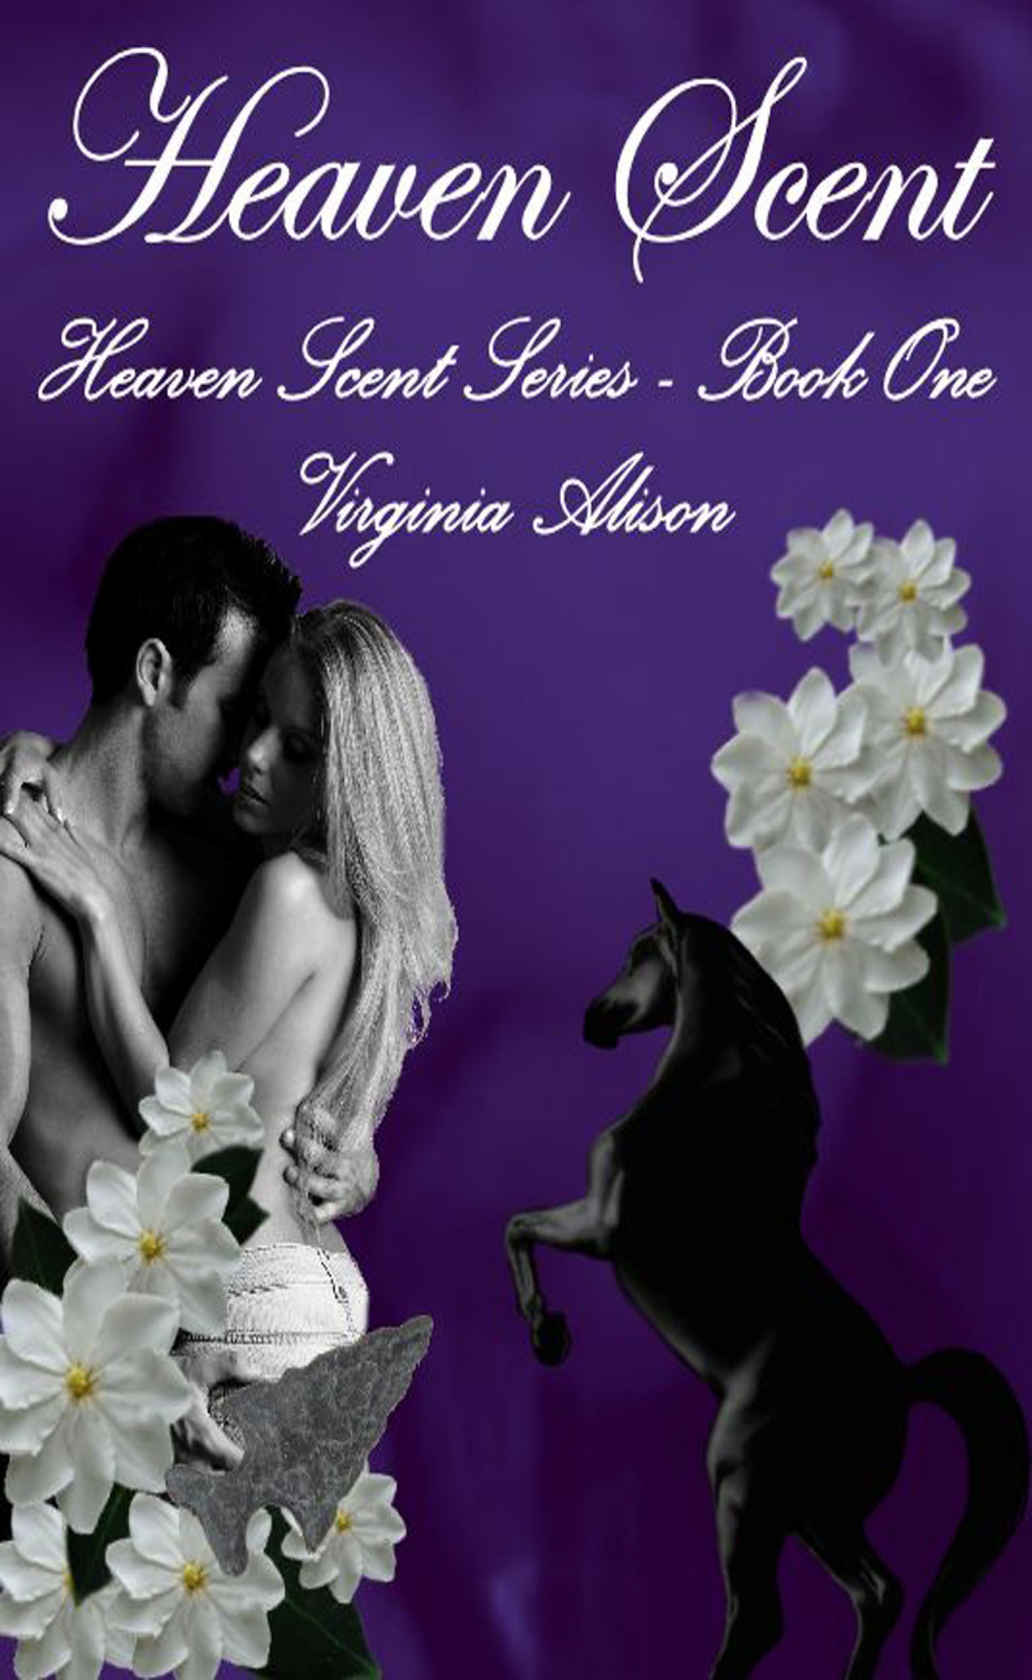 Cover image for Heaven Scent